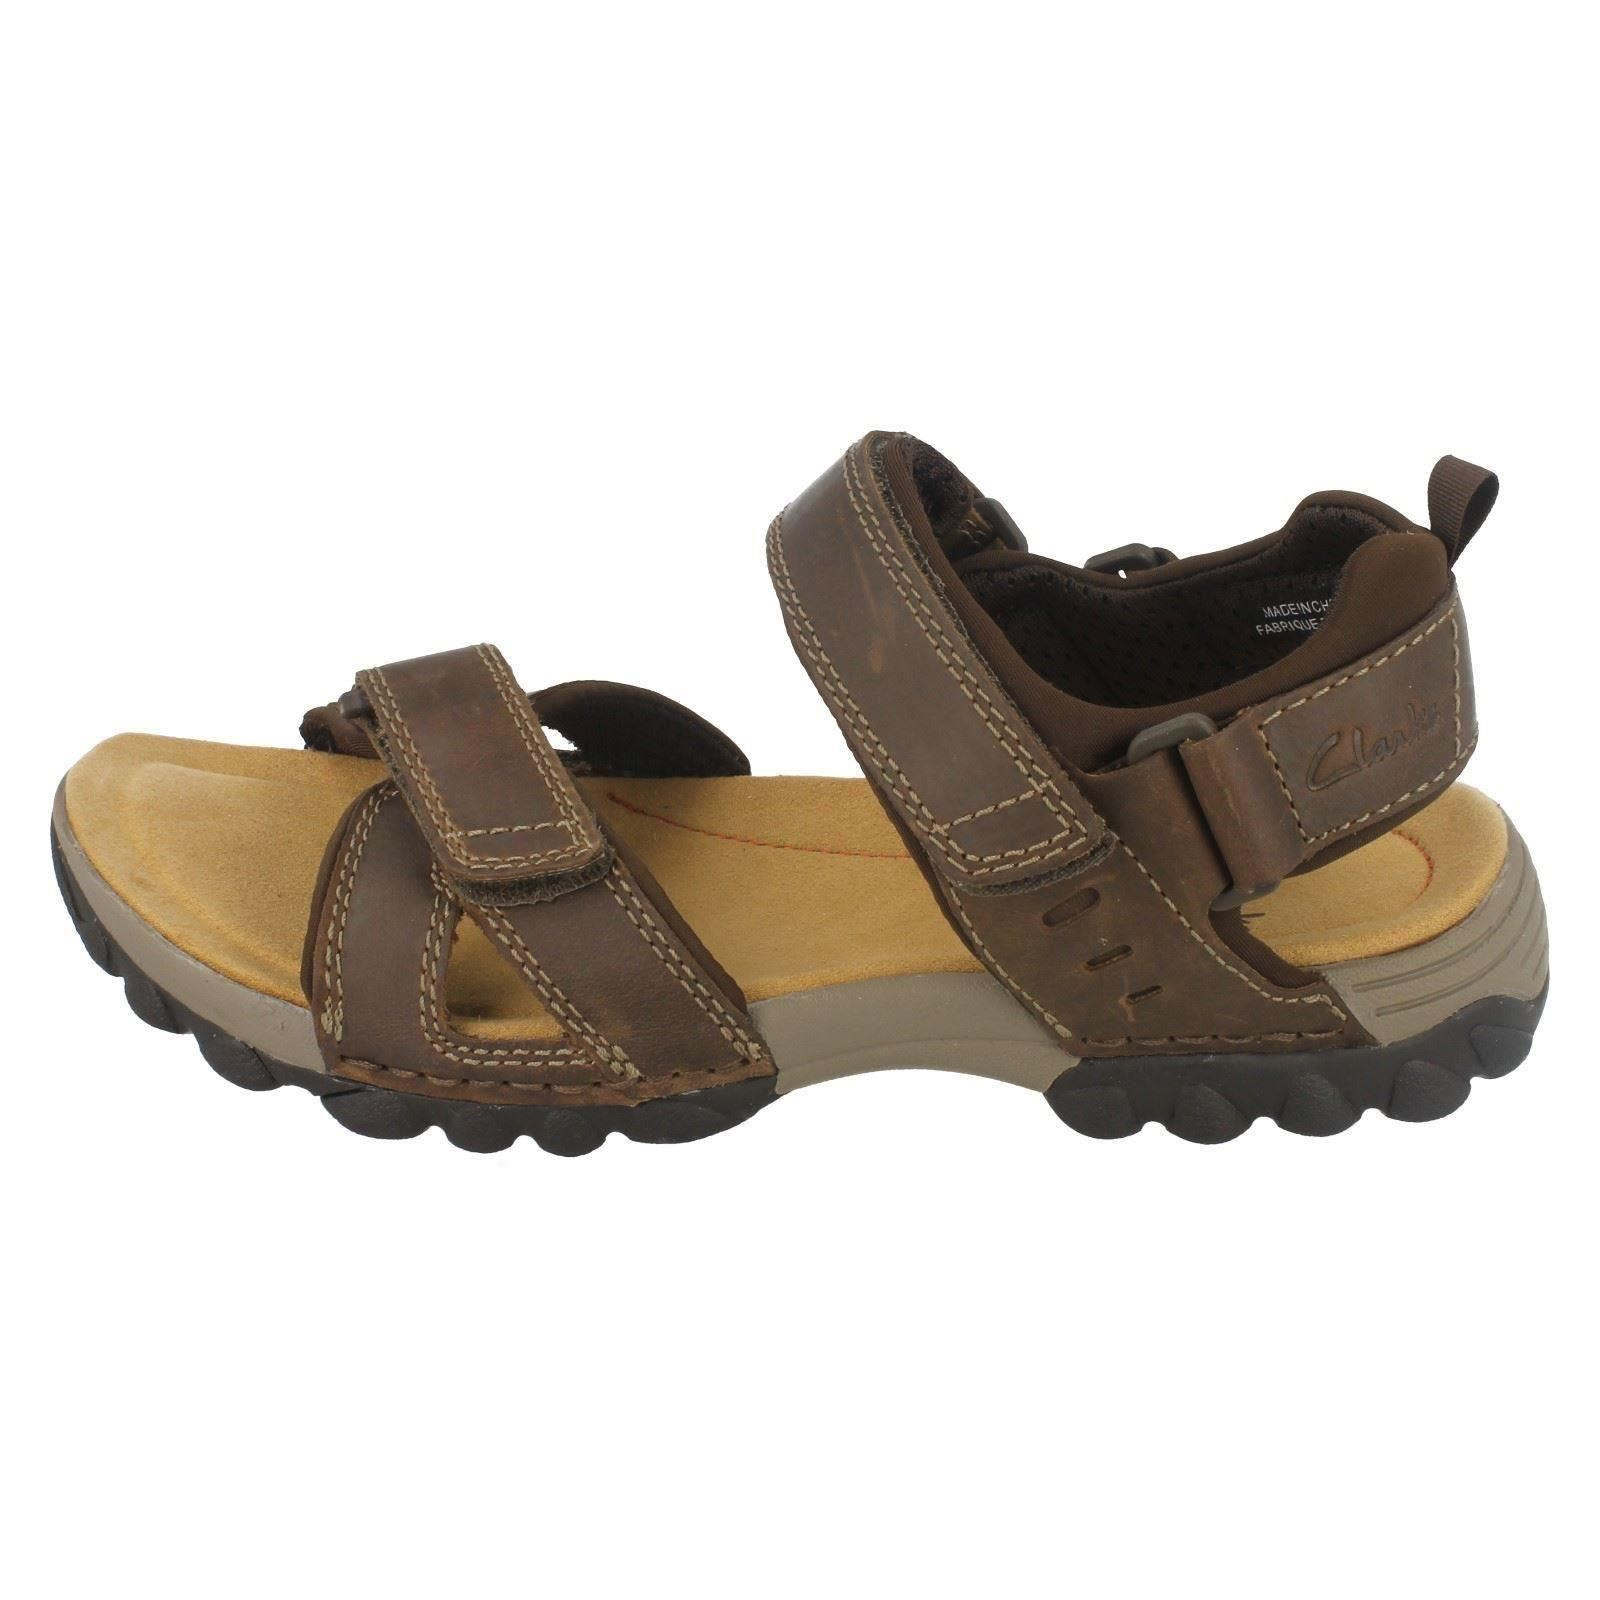 1a07ded9a1dc4 Clarks Mens Casual Vextor Part Nubuck Sandals in Tobacco 6.5 G. About this  product. Picture 1 of 8  Picture 2 of 8  Picture 3 of 8 ...